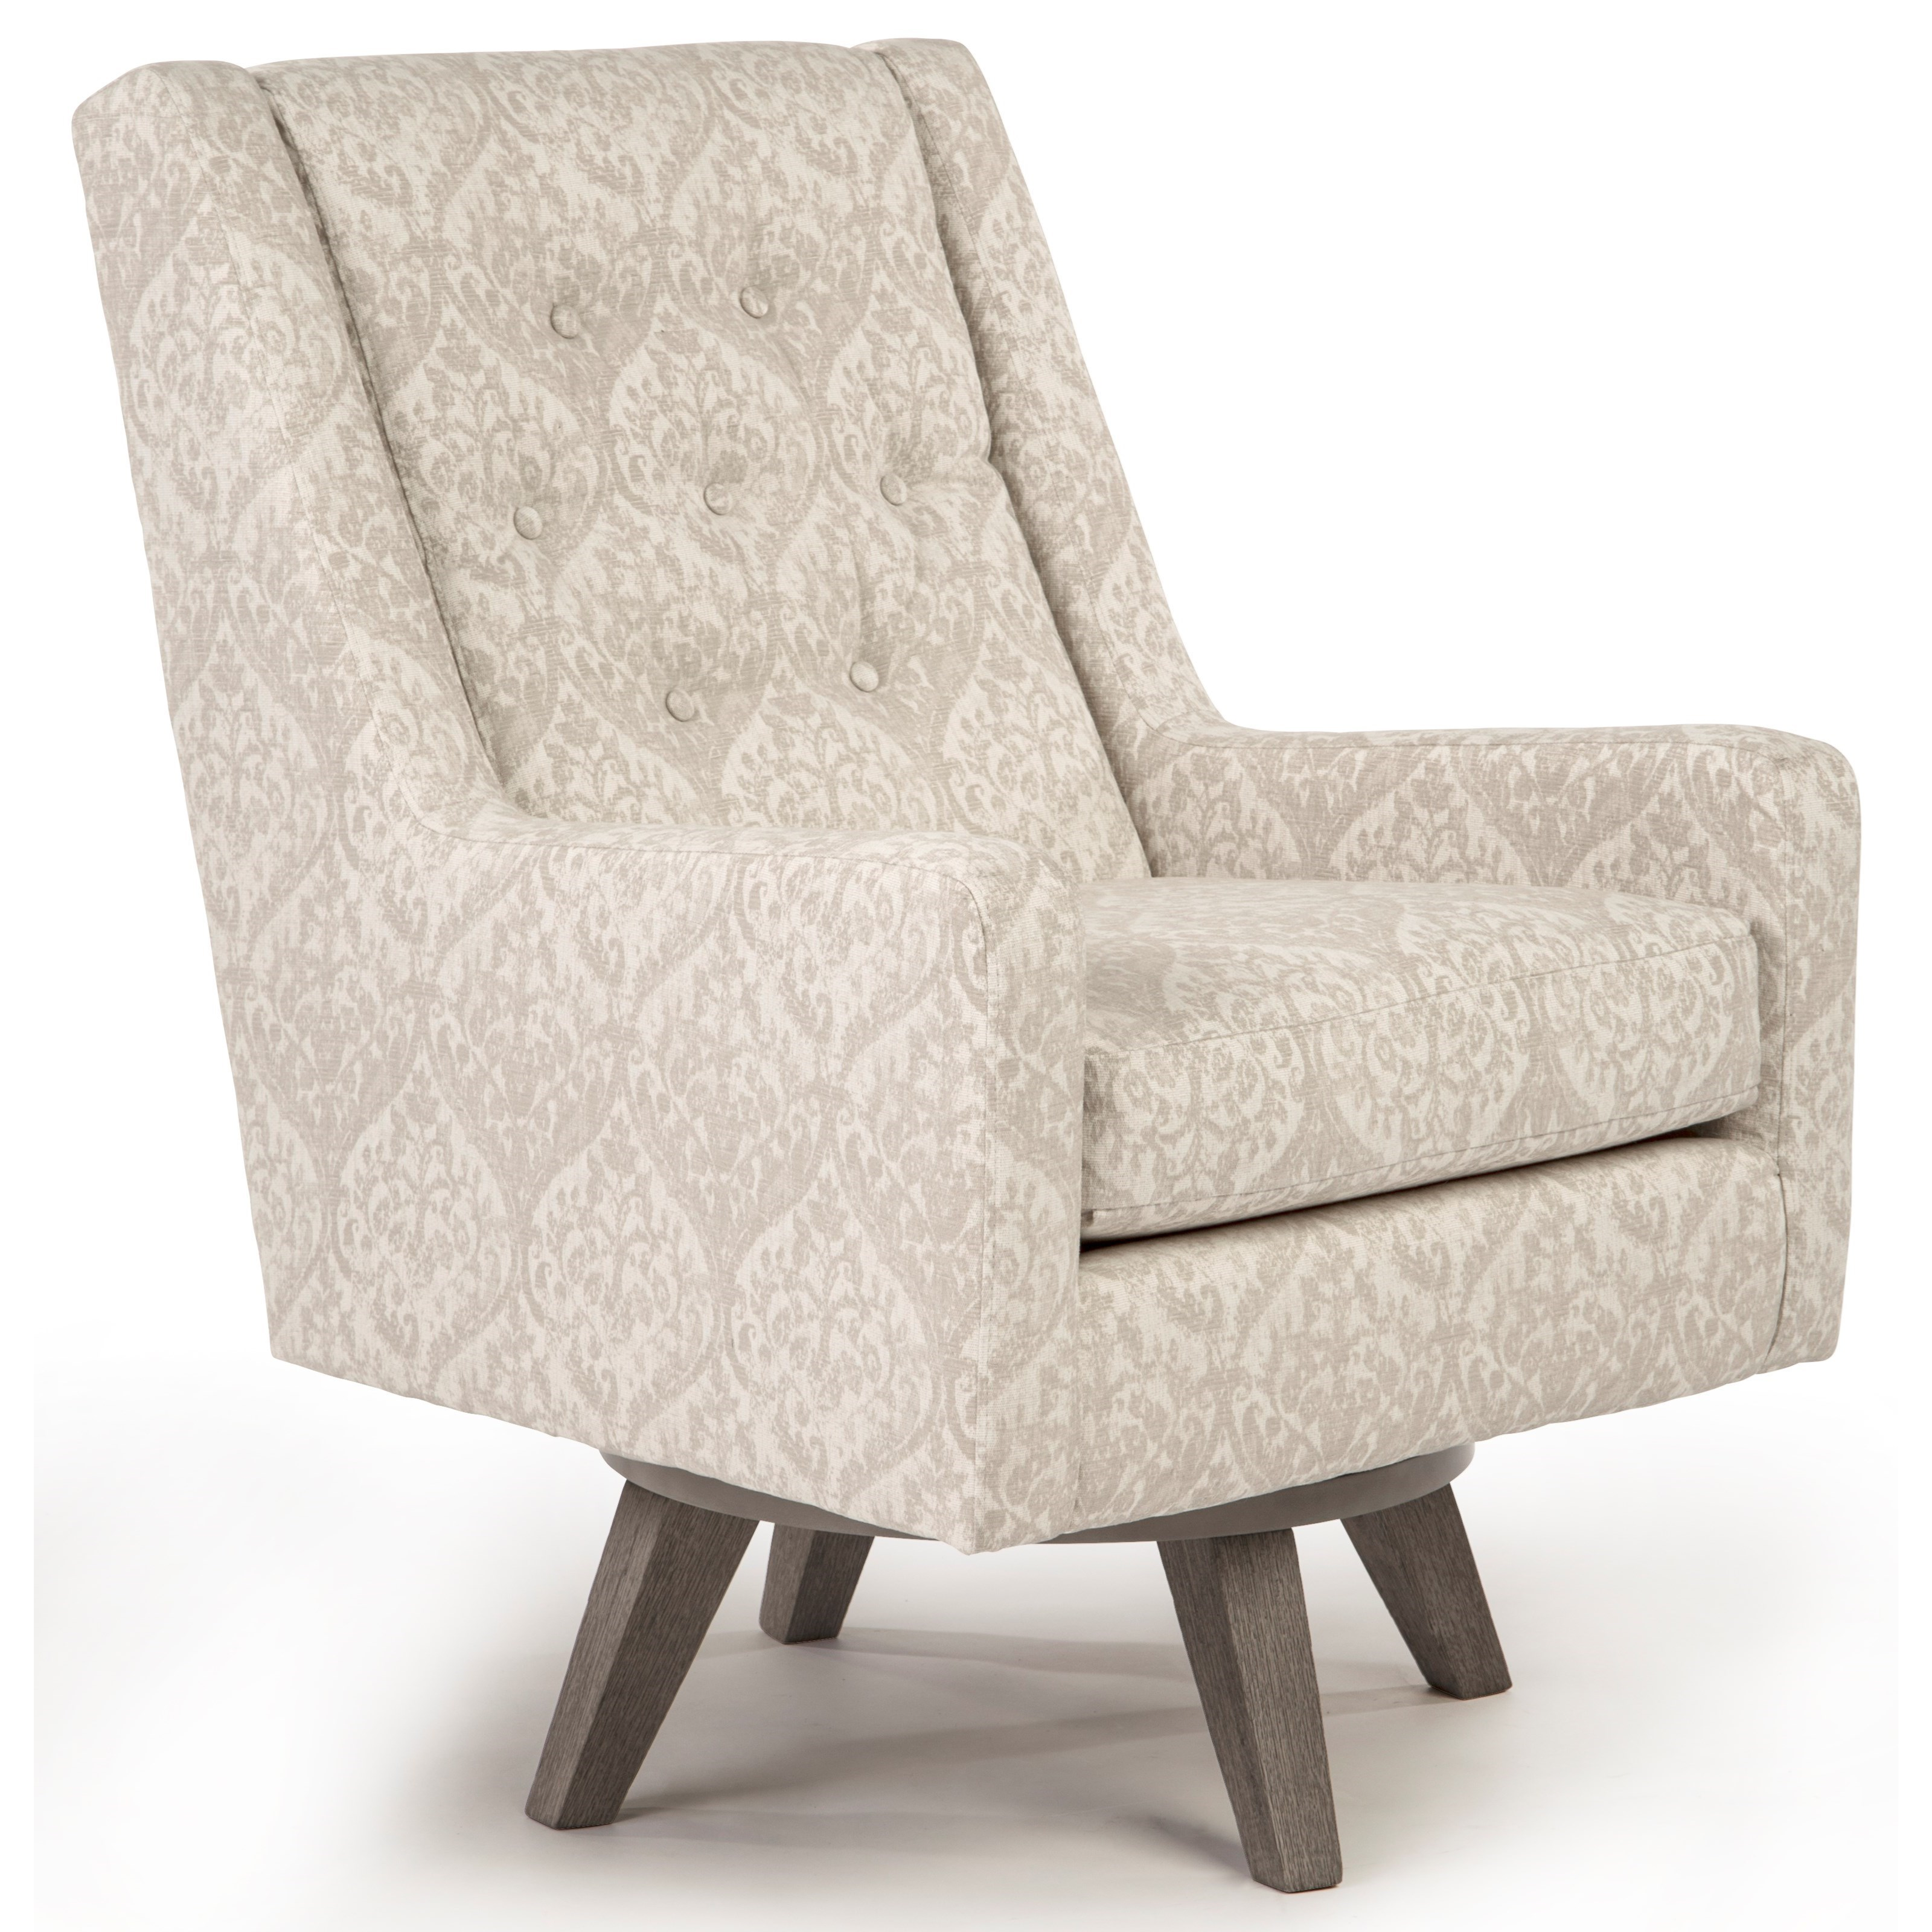 Picture of: Best Home Furnishings Kale Mid Century Modern Swivel Chair Pedigo Furniture Upholstered Chairs